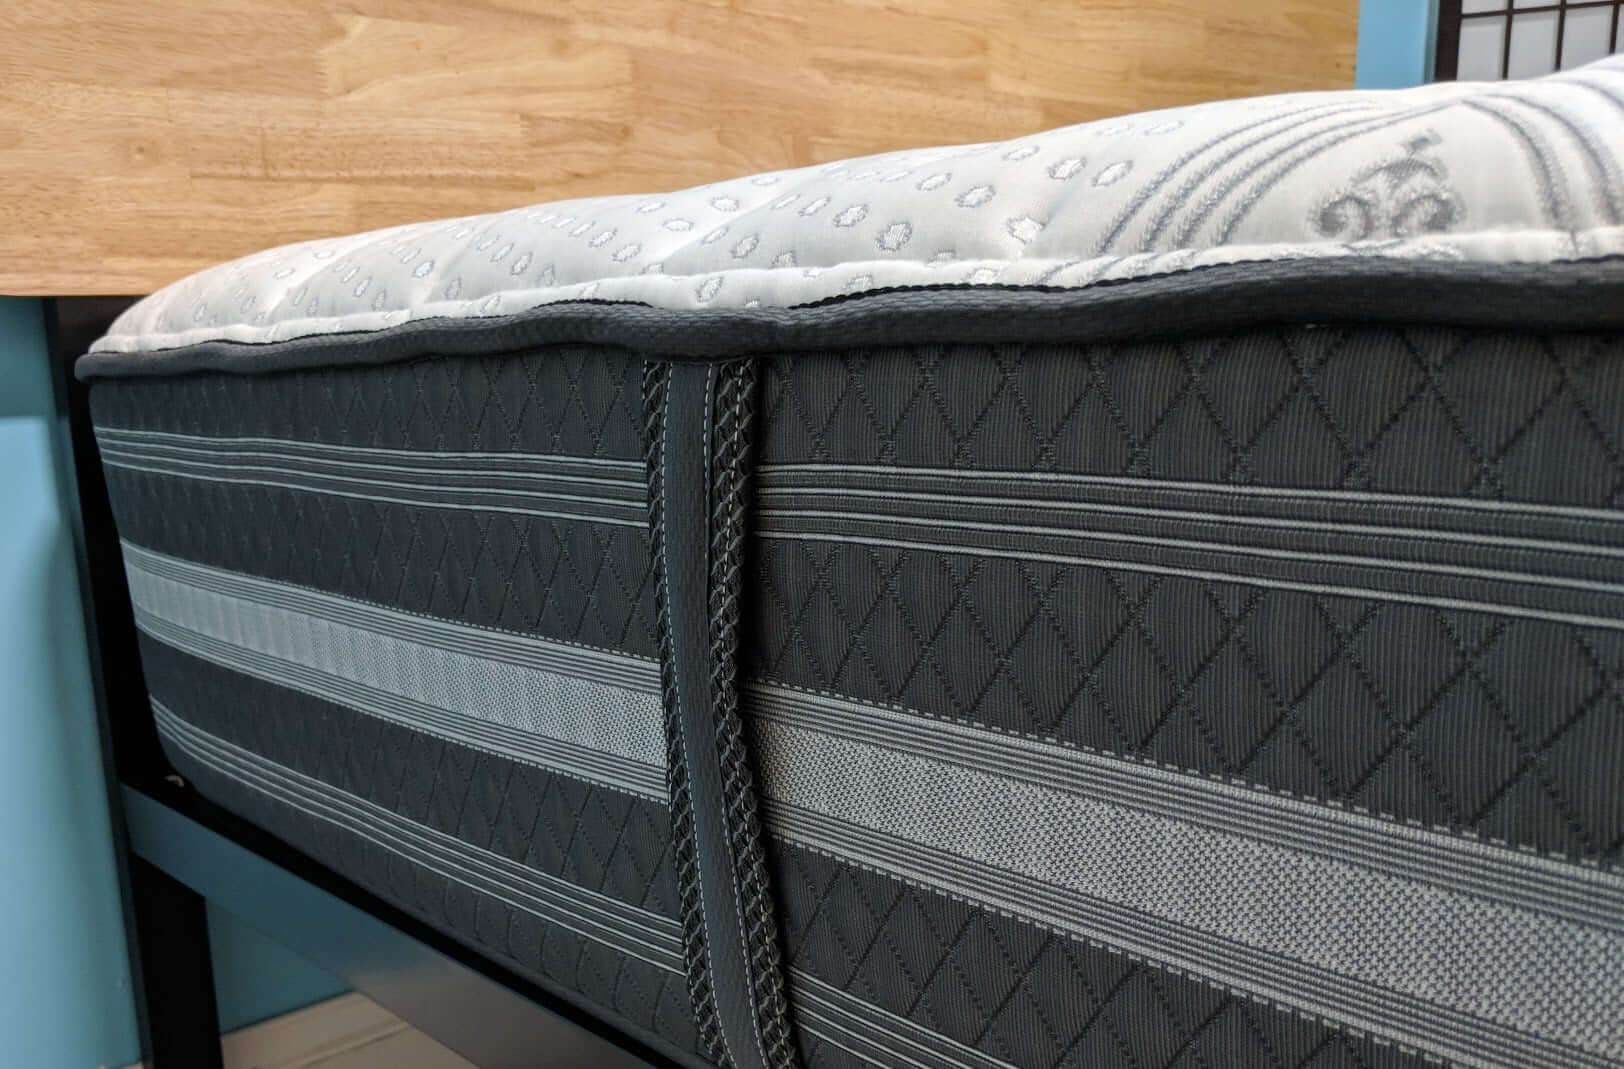 Beautyrest Black King Size Beautyrest Black Calista Extra Firm Mattress Review The Sleep Sherpa